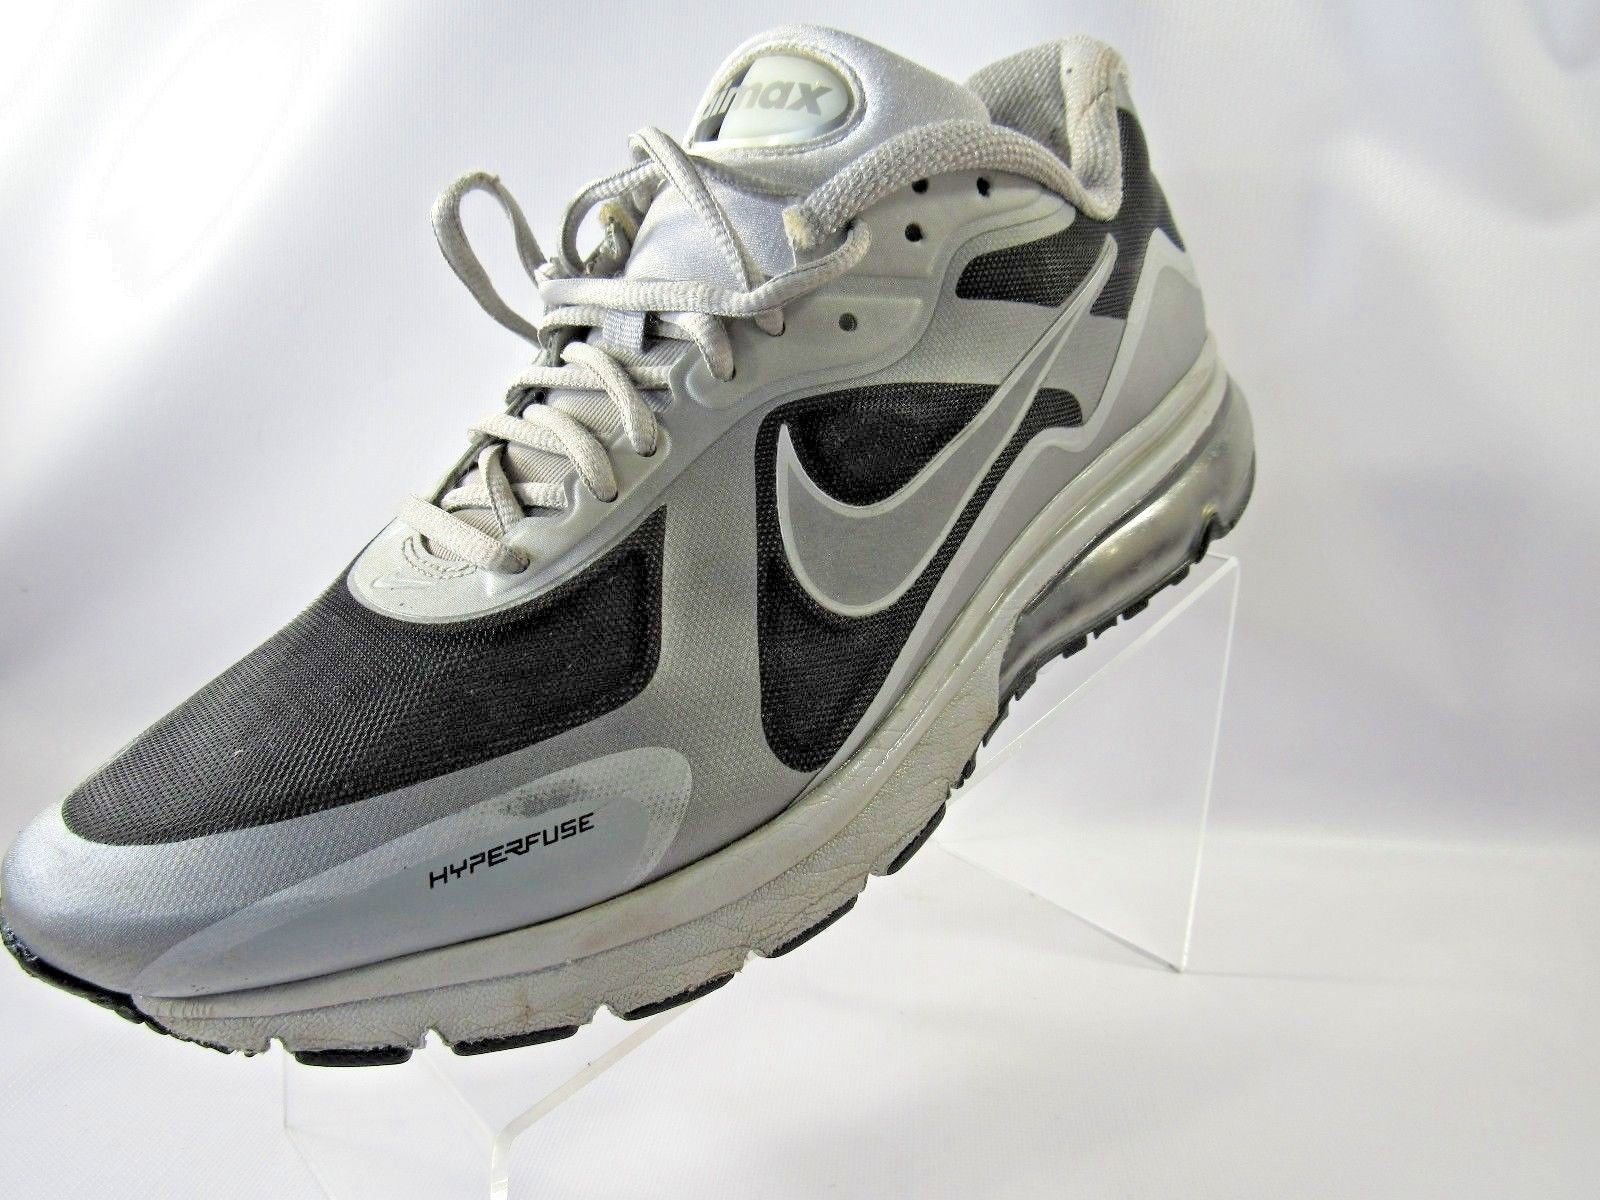 the best attitude 8797c 8d049 ... Nike Air Max Hyperfuse 454347-090 Size 12 M Black Silver Running Mens  Shoes ...